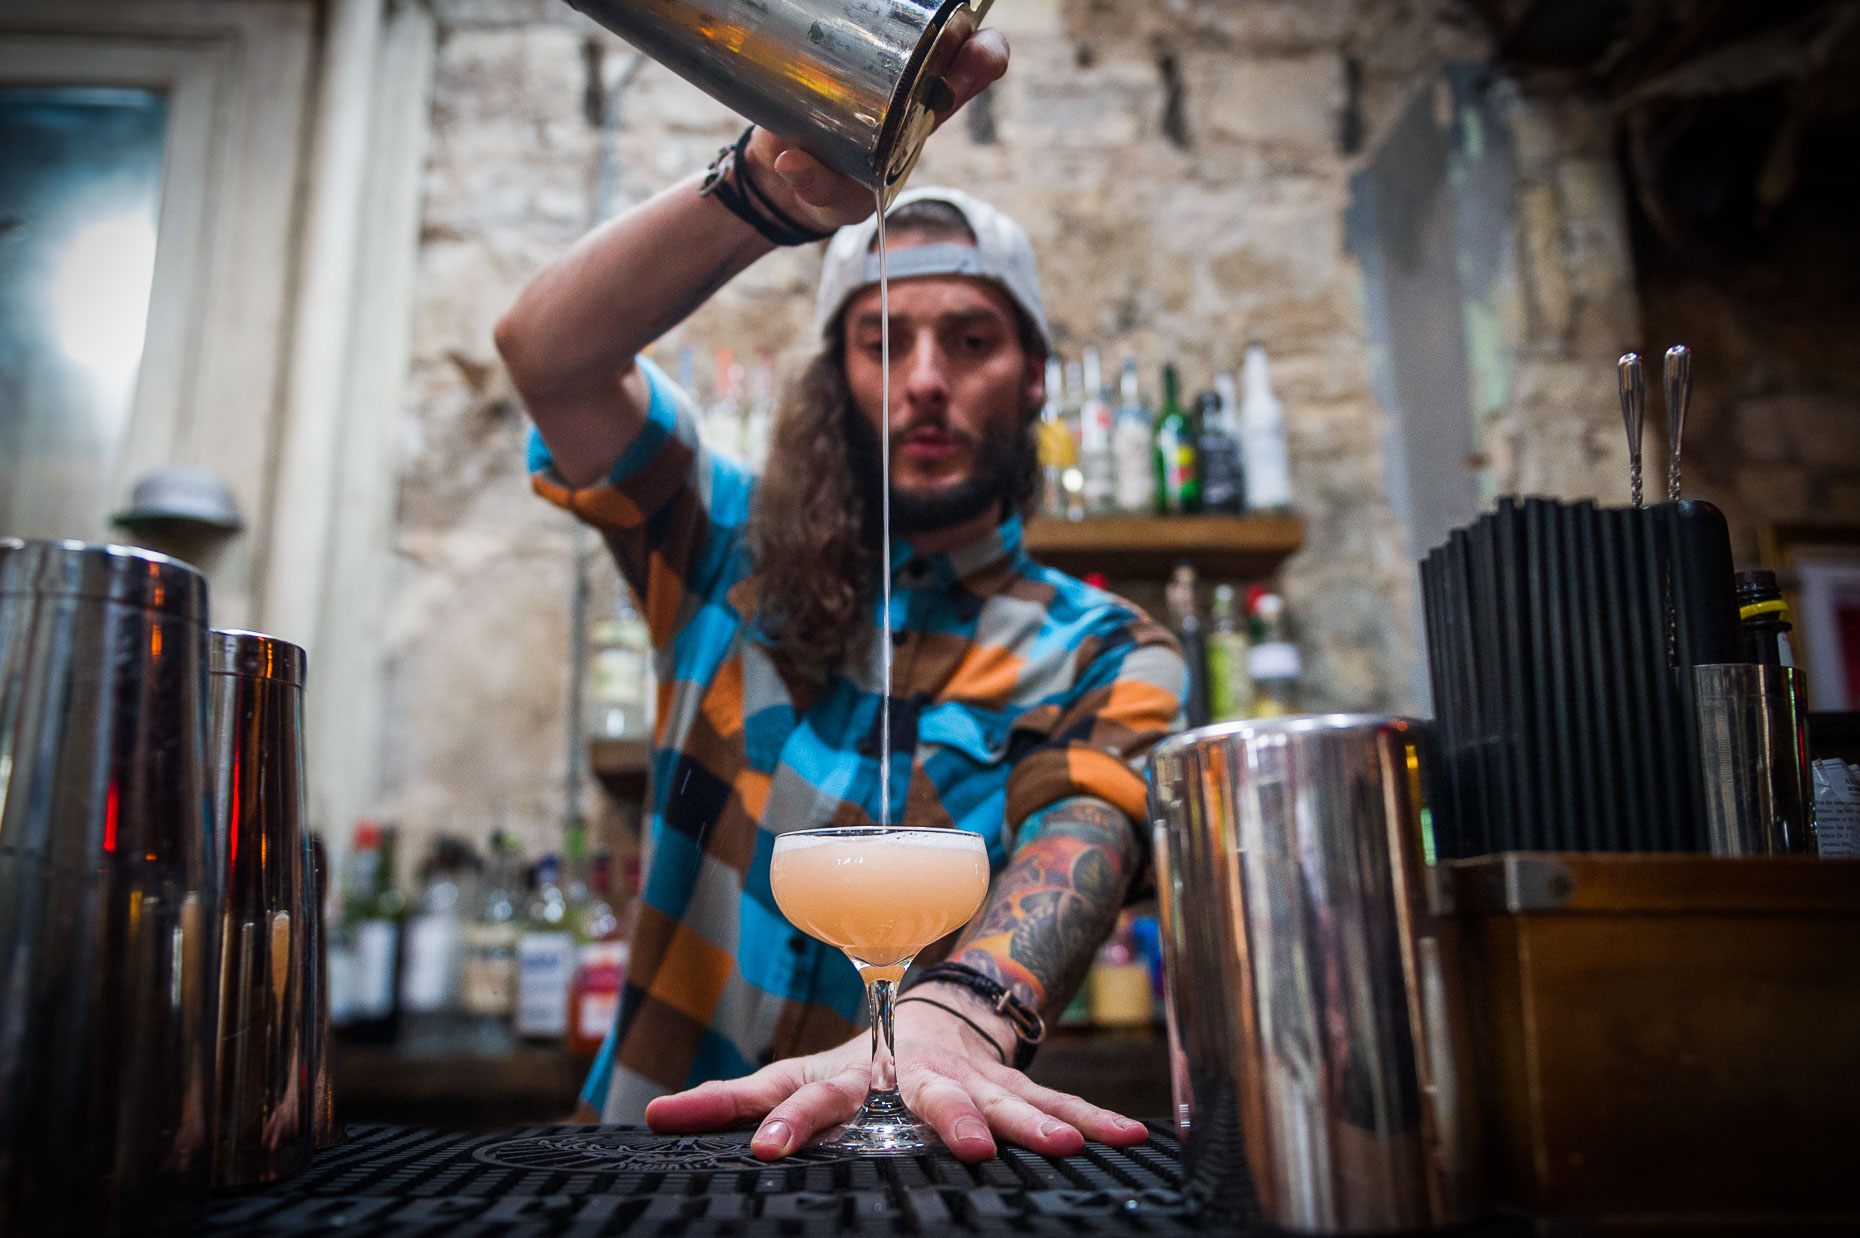 aaron-ingrao-keepers-of-the-craft-cocktails-across-america-whilsers-austin-3687-Edit